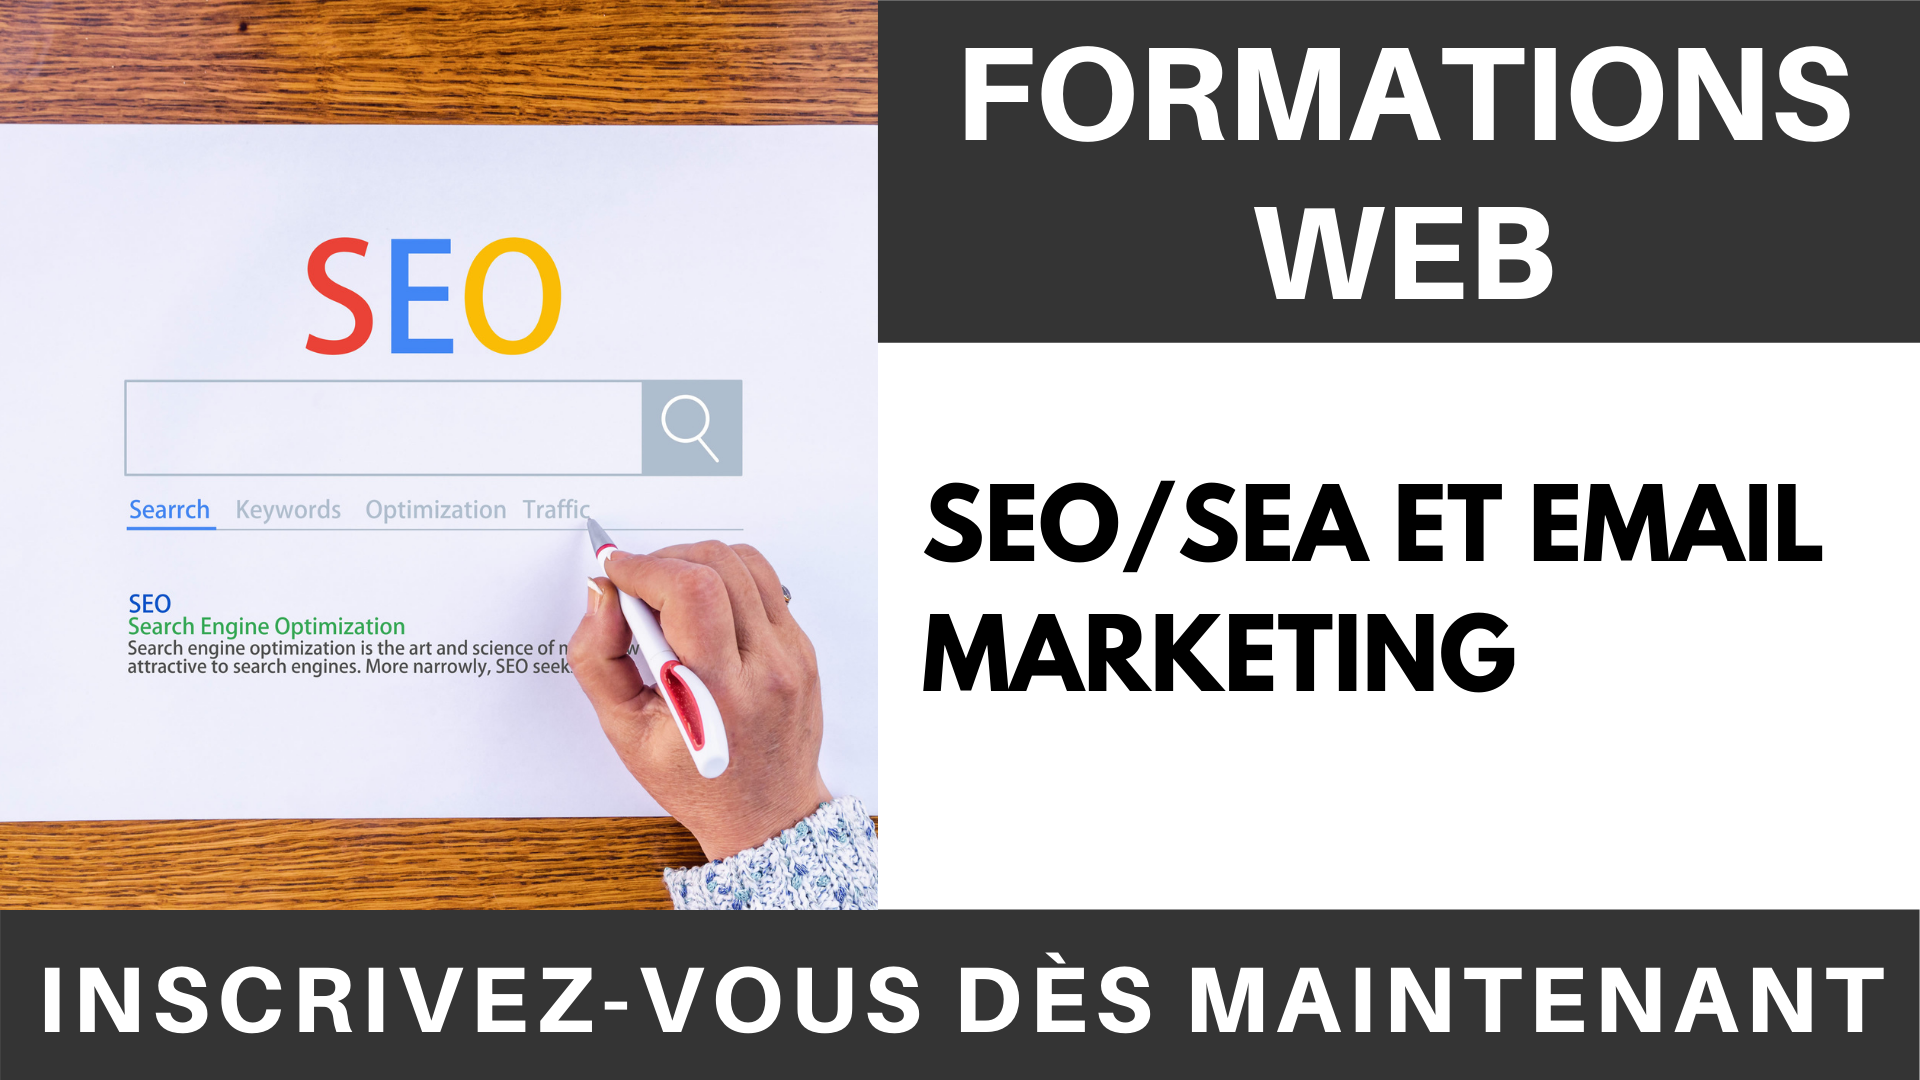 _Formation exclusives - SEO, SEA et email marketing (1)